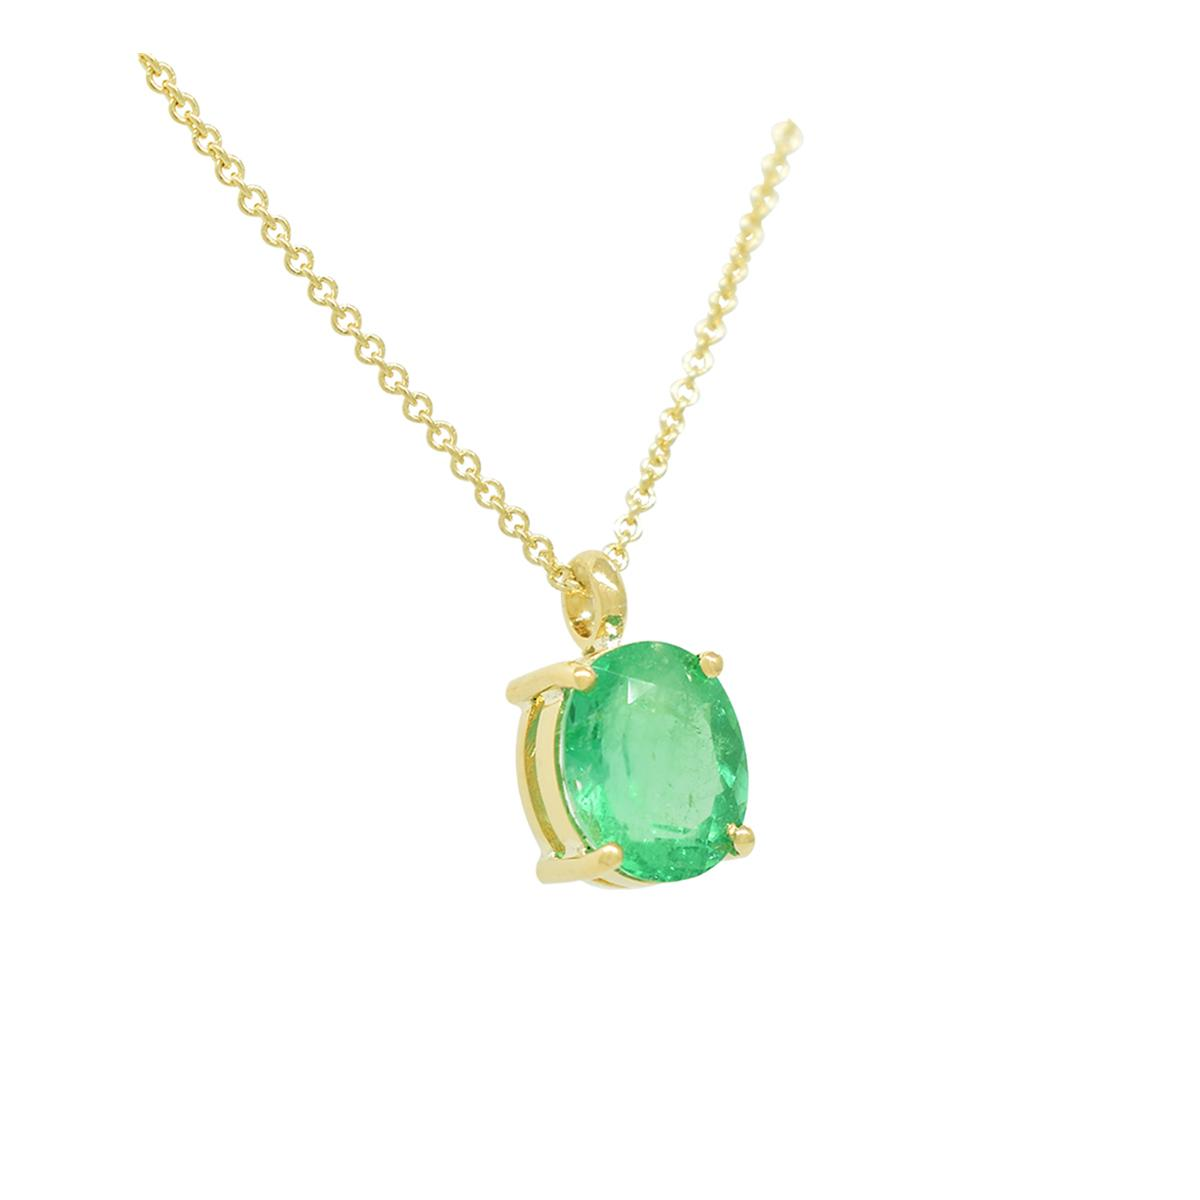 solitaire-emerald-necklace-in-18k-yellow-gold-with-oval-shape-natural-emerald